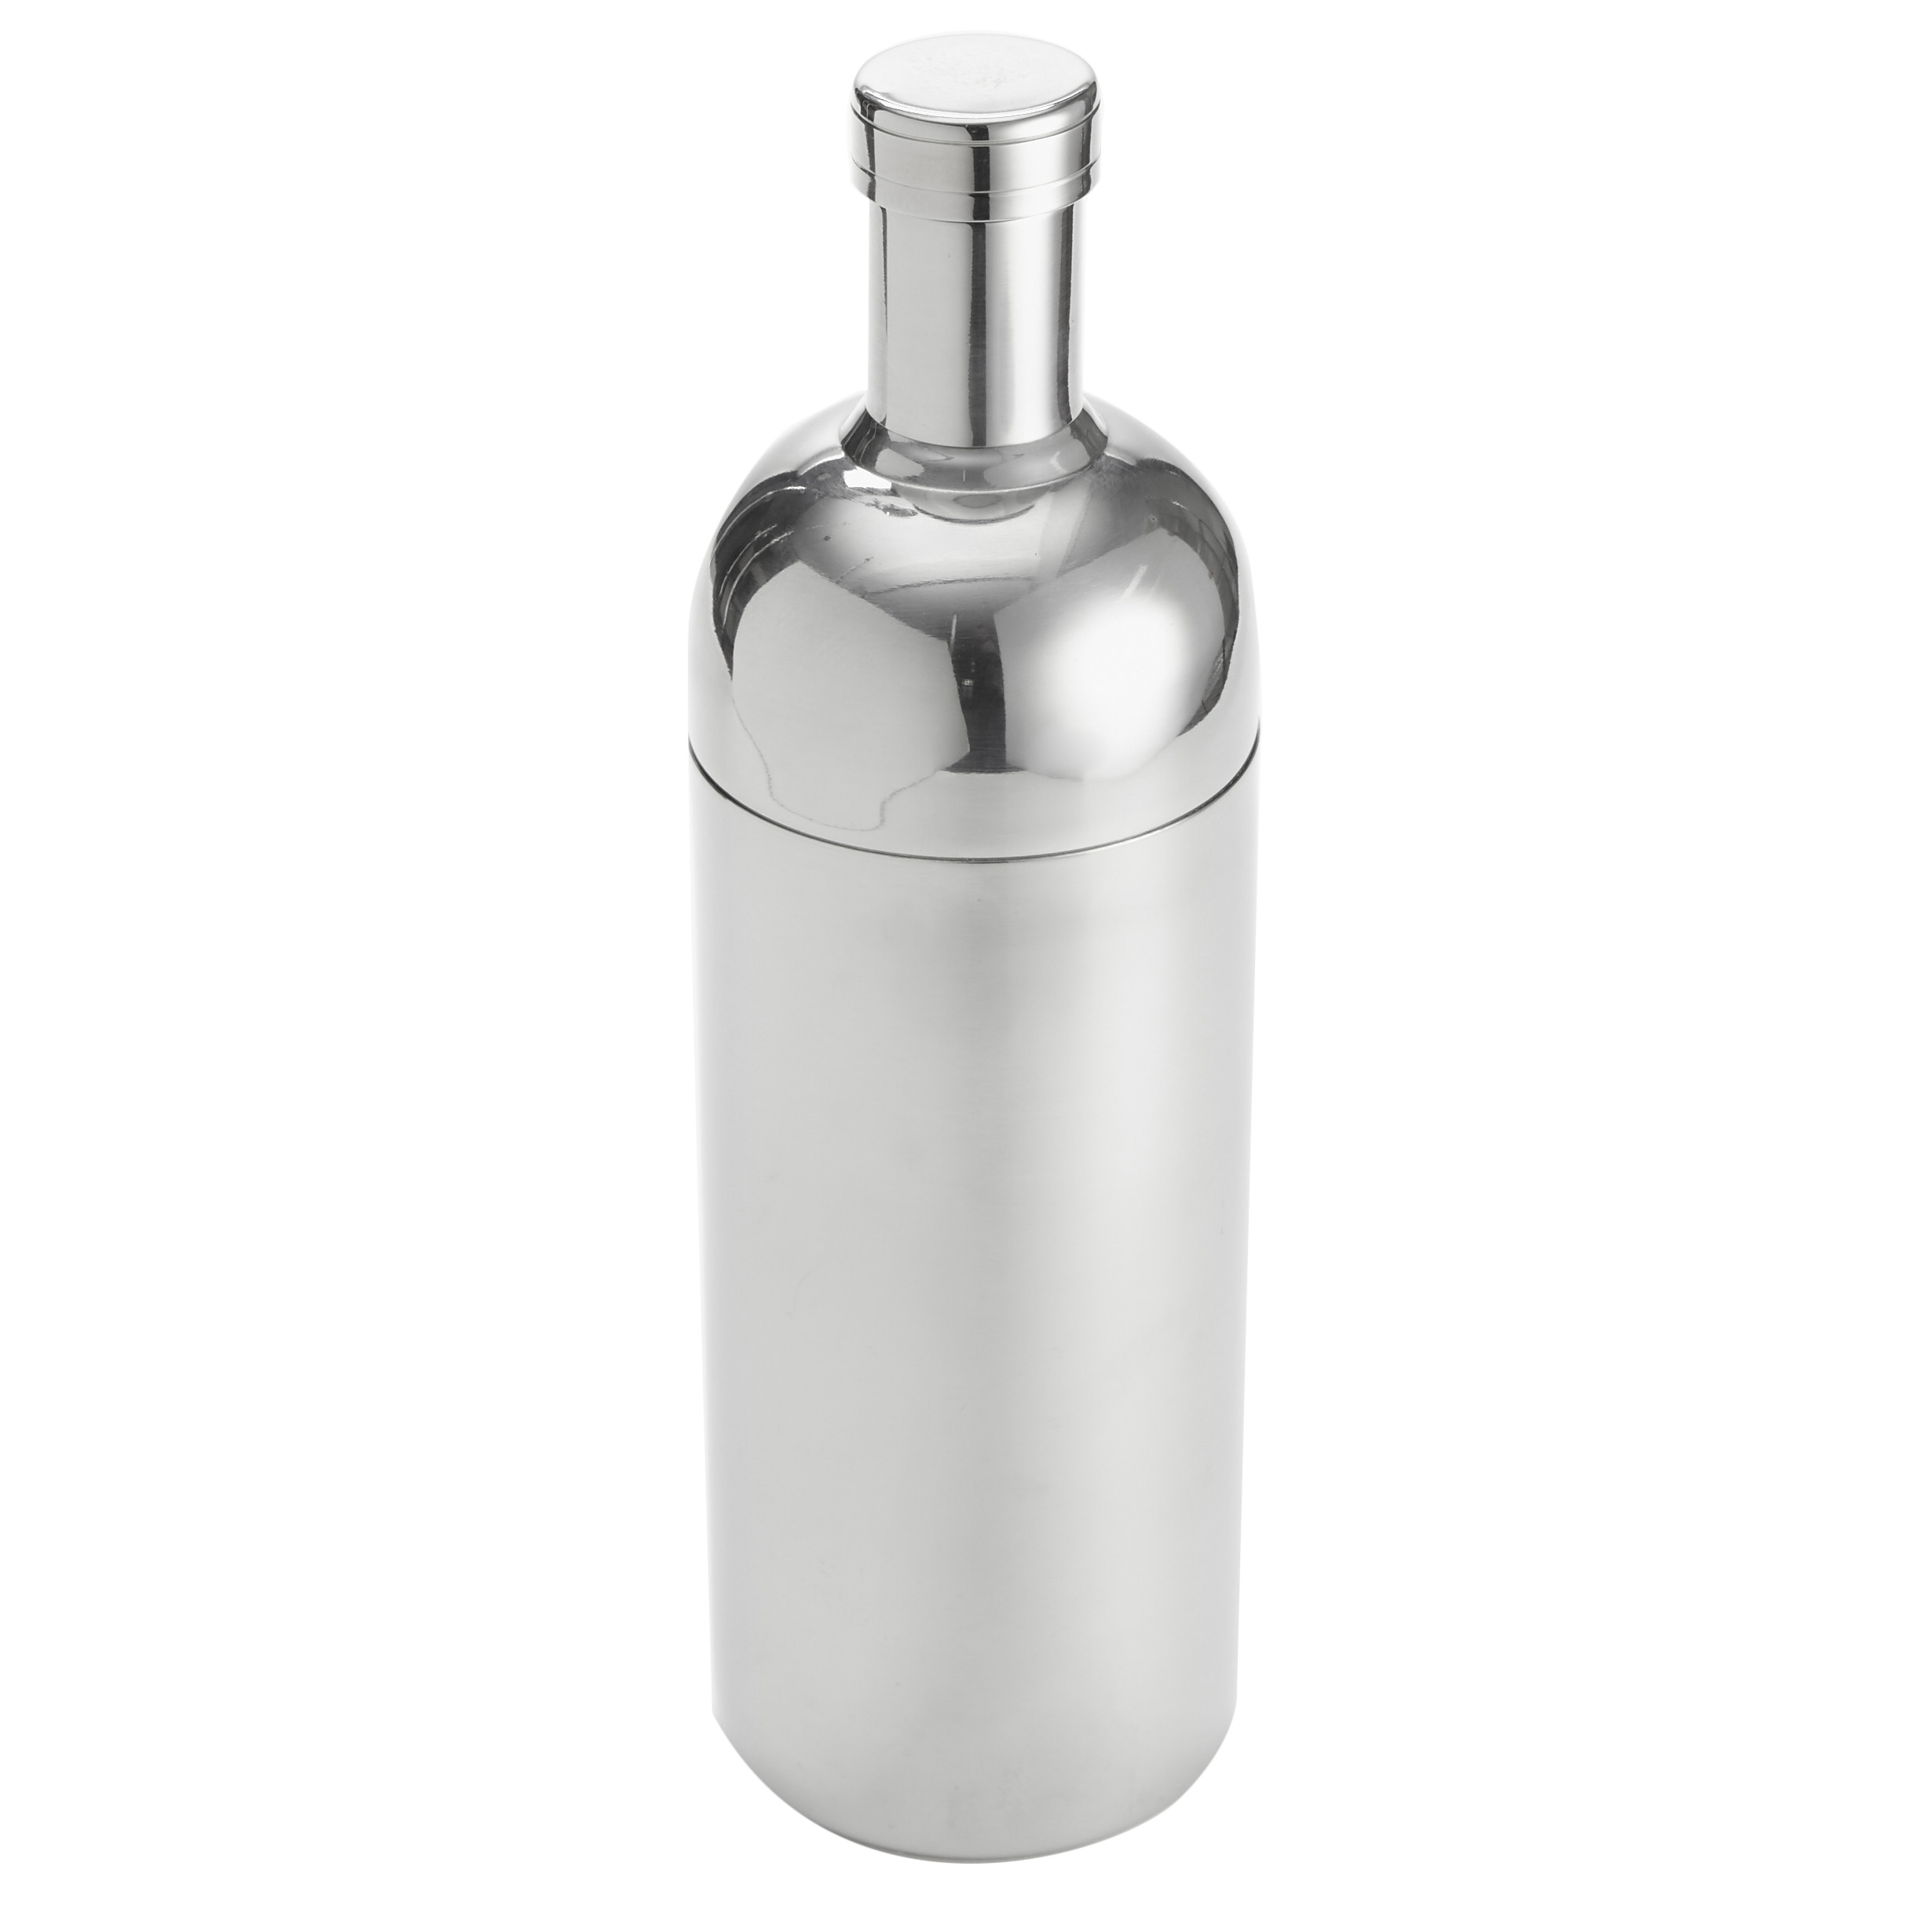 American Metalcraft CSB33 bar cocktail shaker